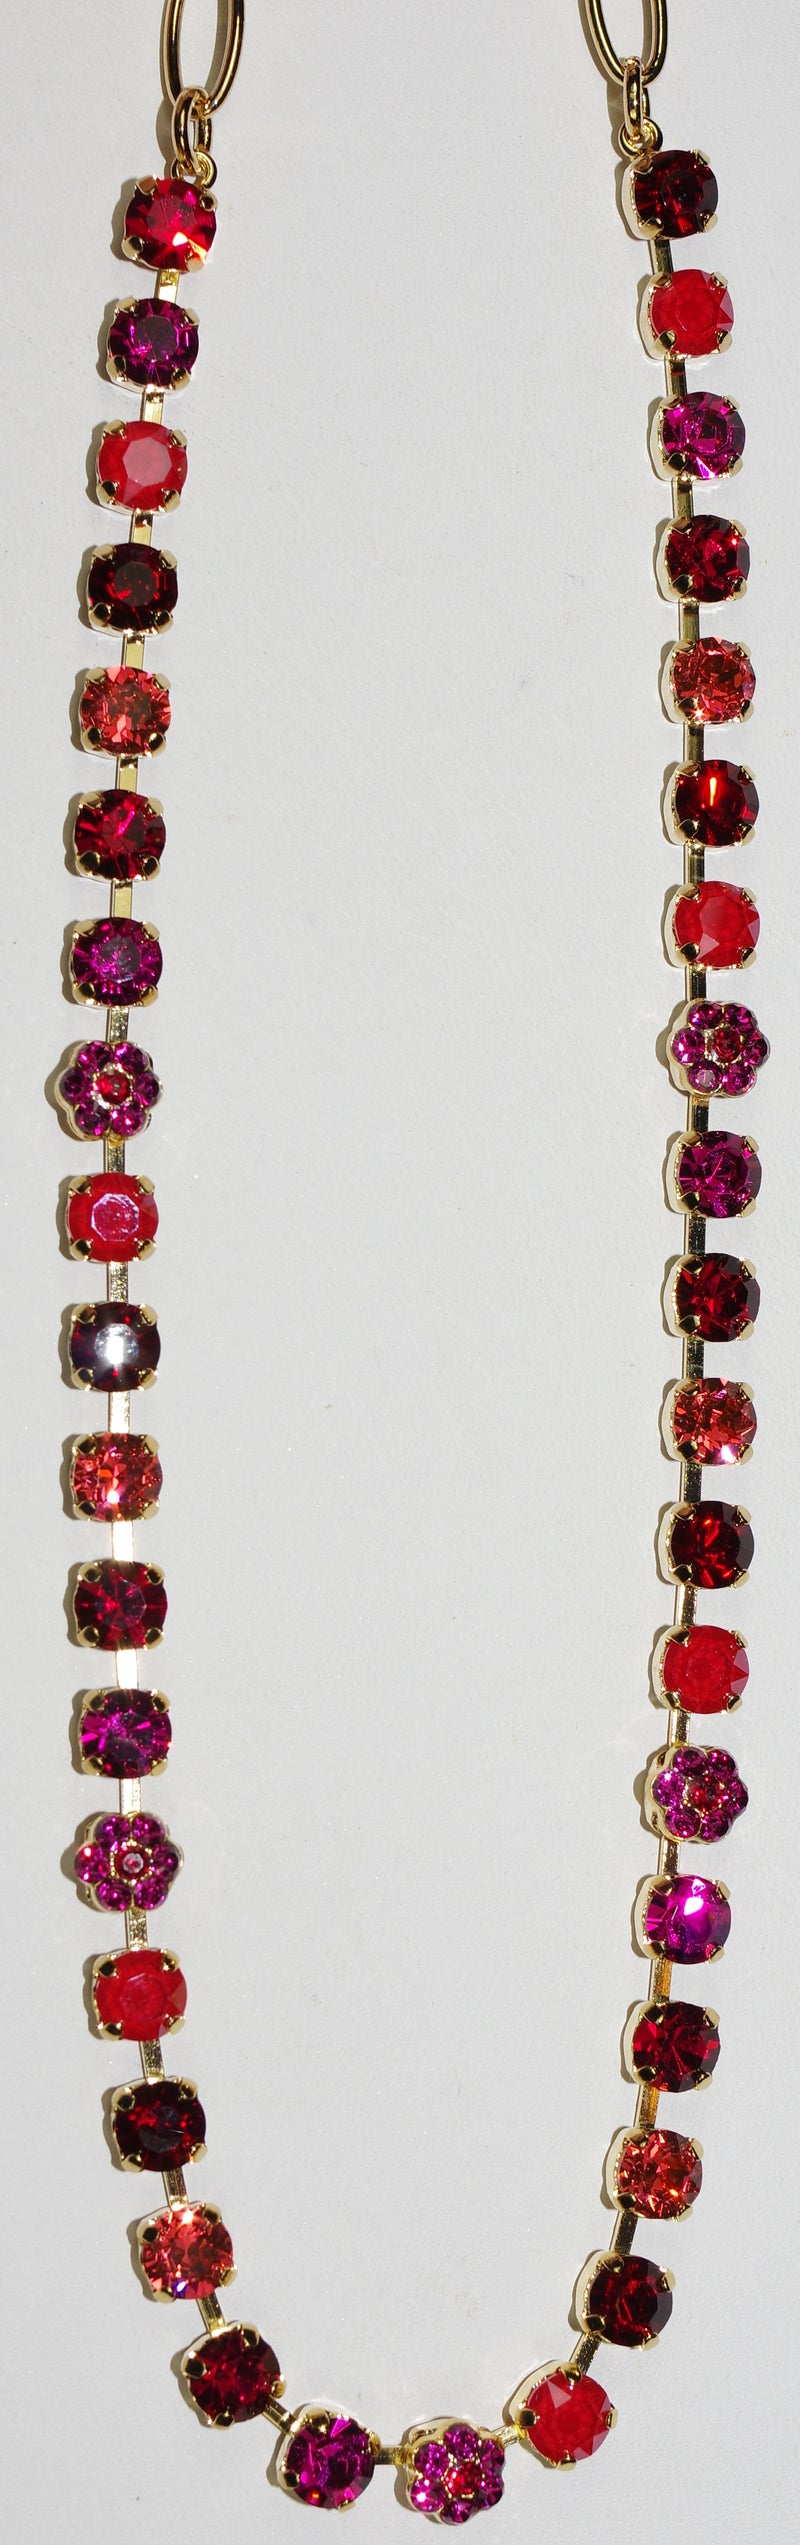 "MARIANA NECKLACE FIRE: pink, red 1/4"" stones in yellow gold setting, 18"" adjustable chain"